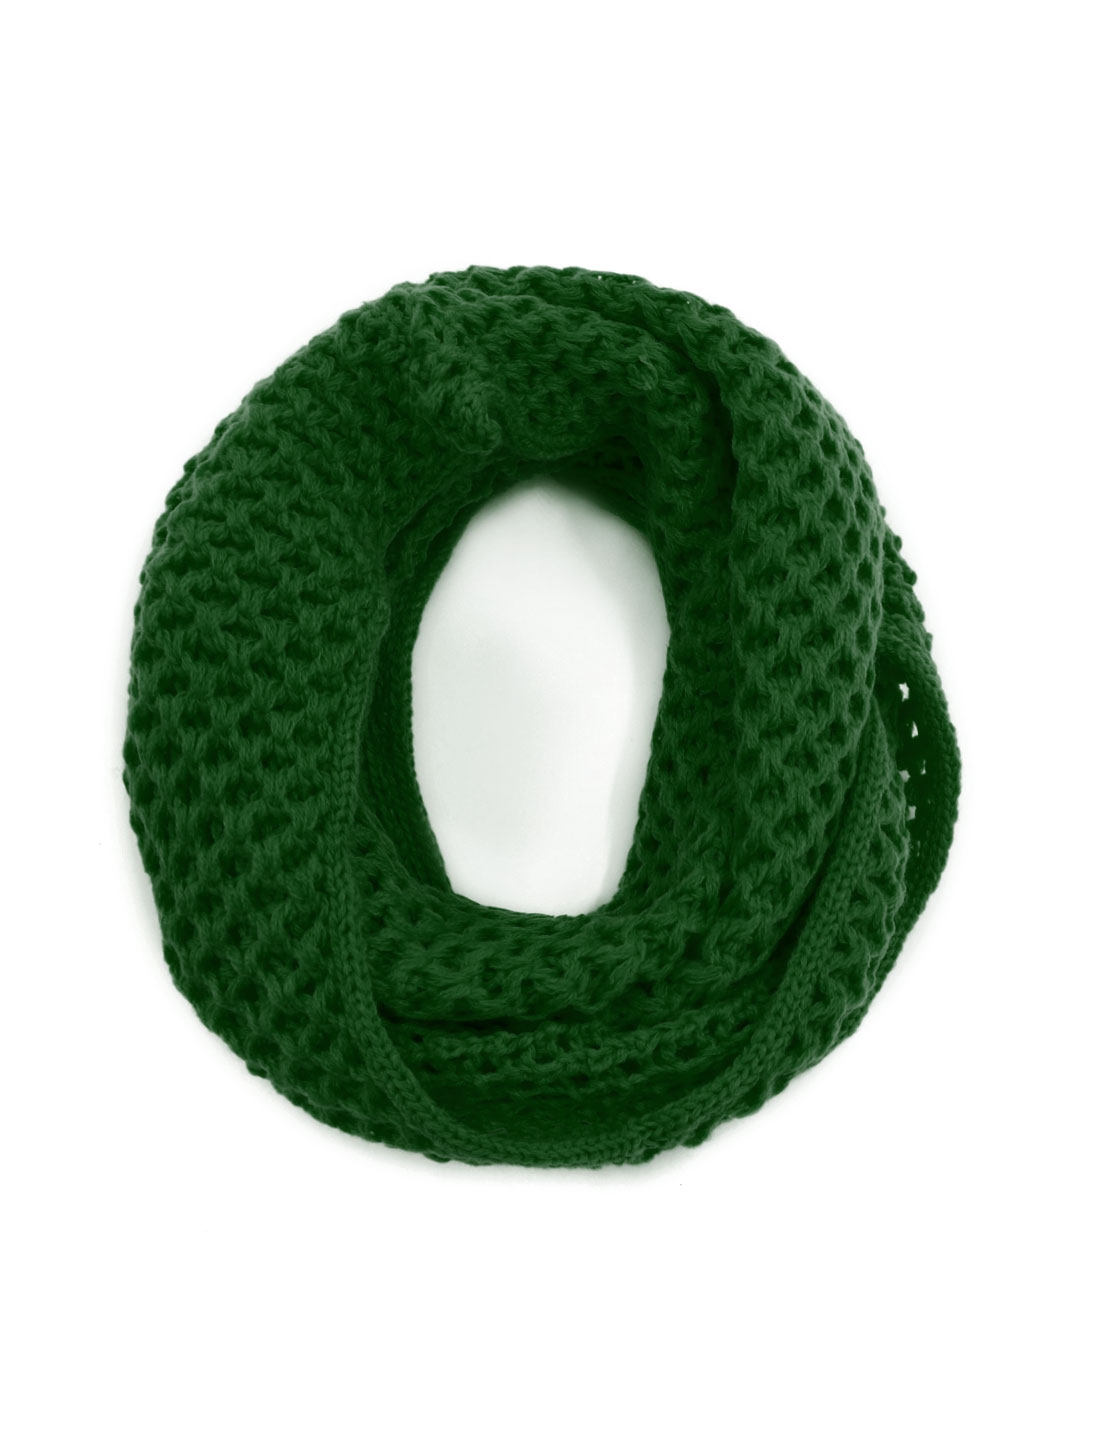 Unisex Winter Wearing Hollow Out Knitted Circle Scarf Green